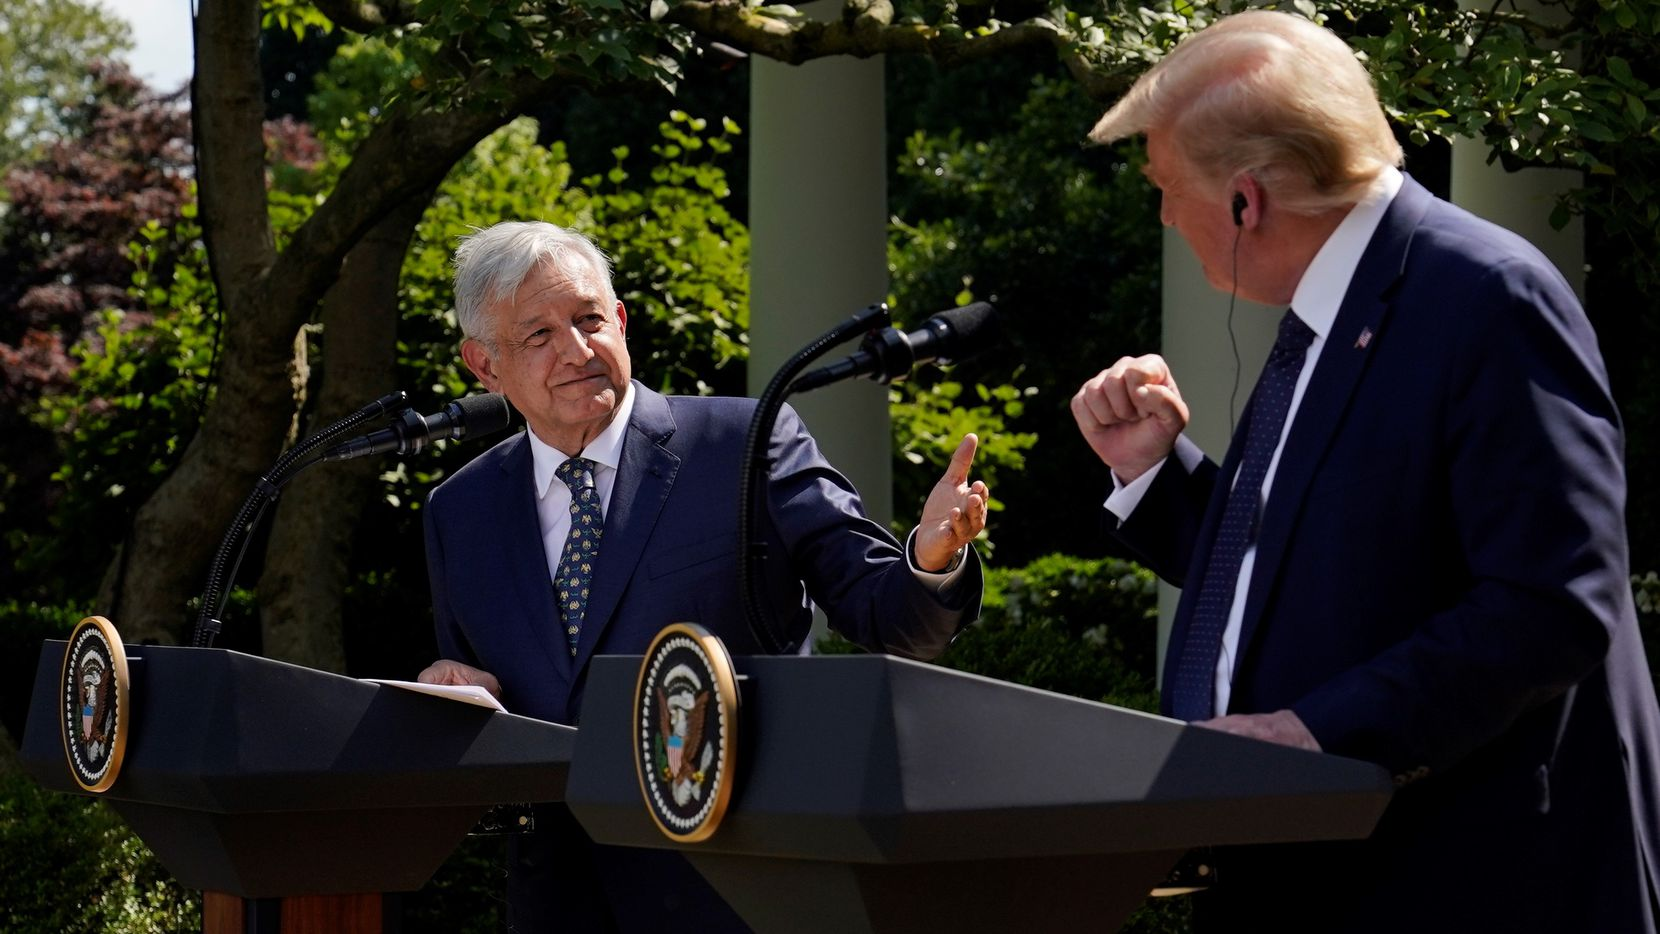 President Donald Trump and Mexican President Andres Manuel Lopez Obrador gesture before signing a joint declaration at the White House on July 8, 2020.